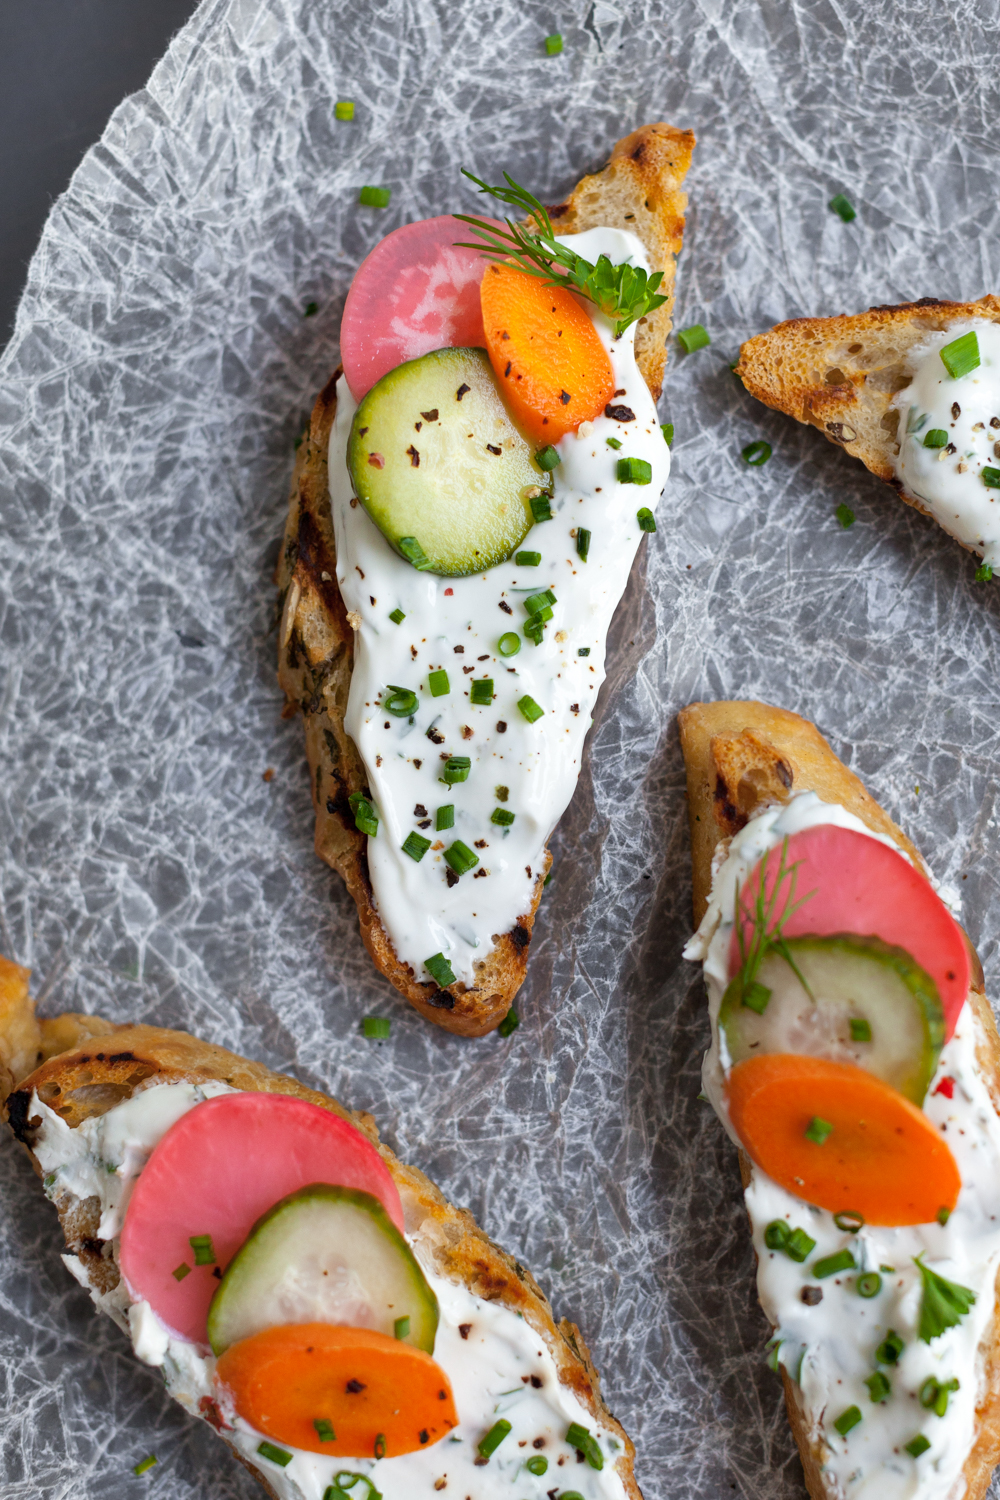 Toast with Herbed Skyr and Quick Pickles, tart and tangy yet earthy and grounded.